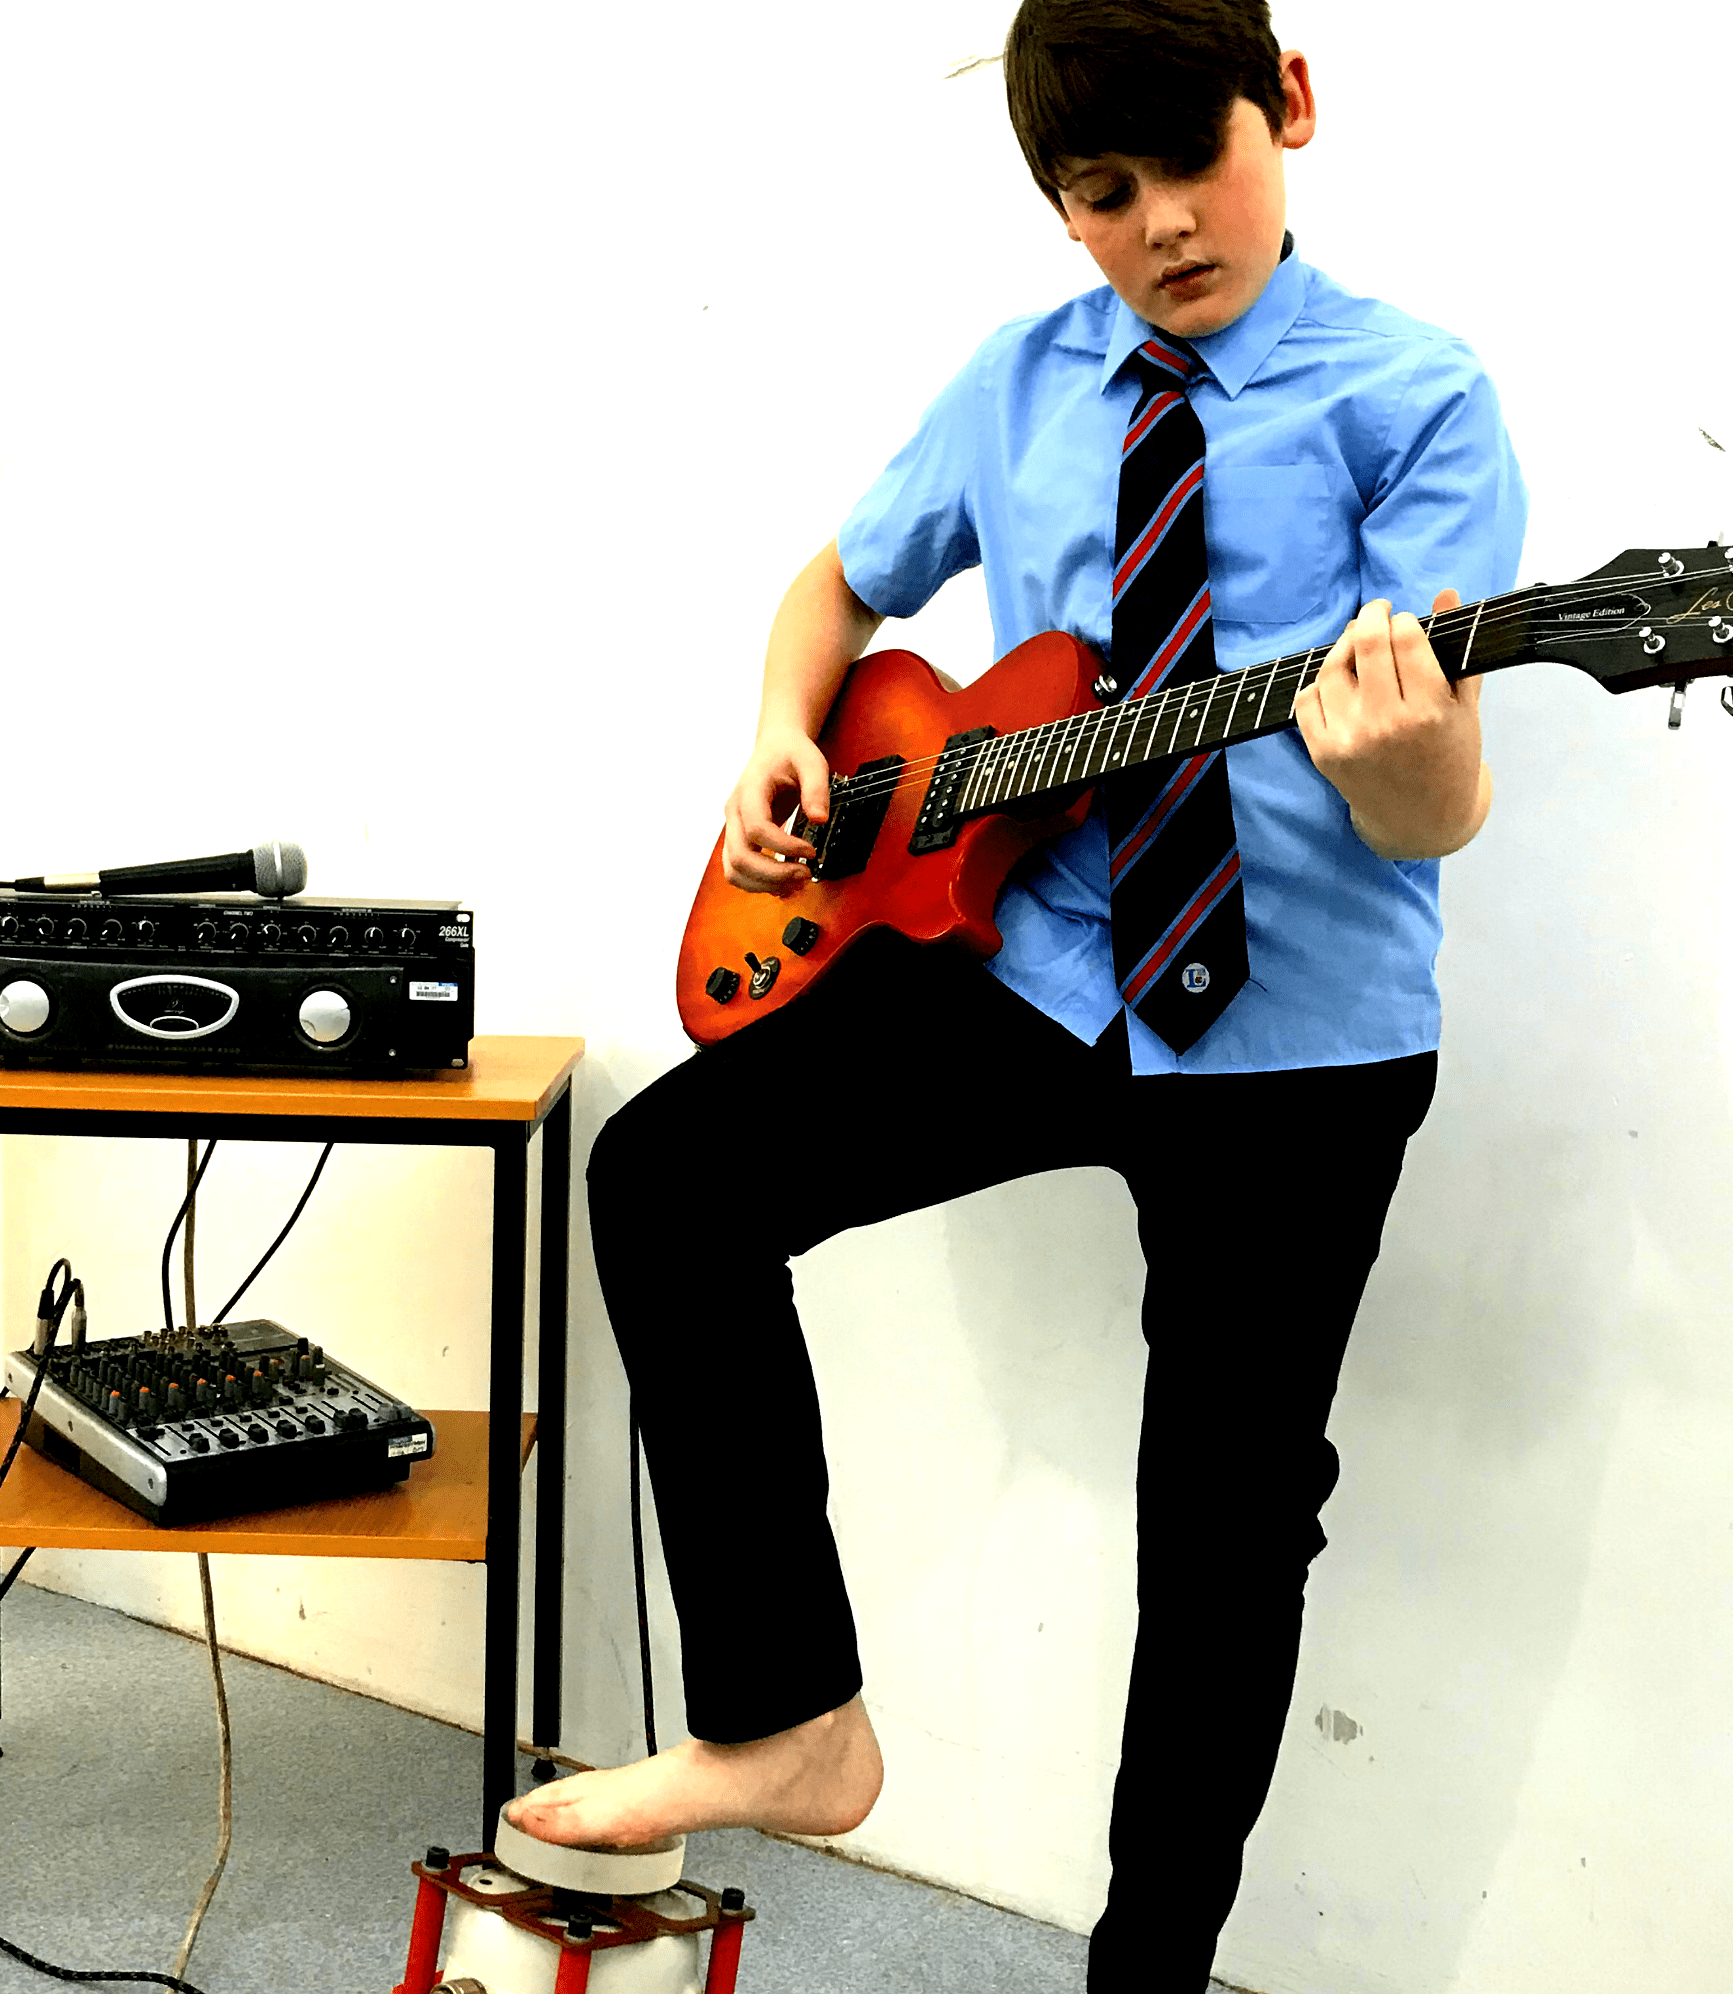 Teenage boy playing a red electric guitar. He has one bare foot placed gently on a vibrotactile foot shaker